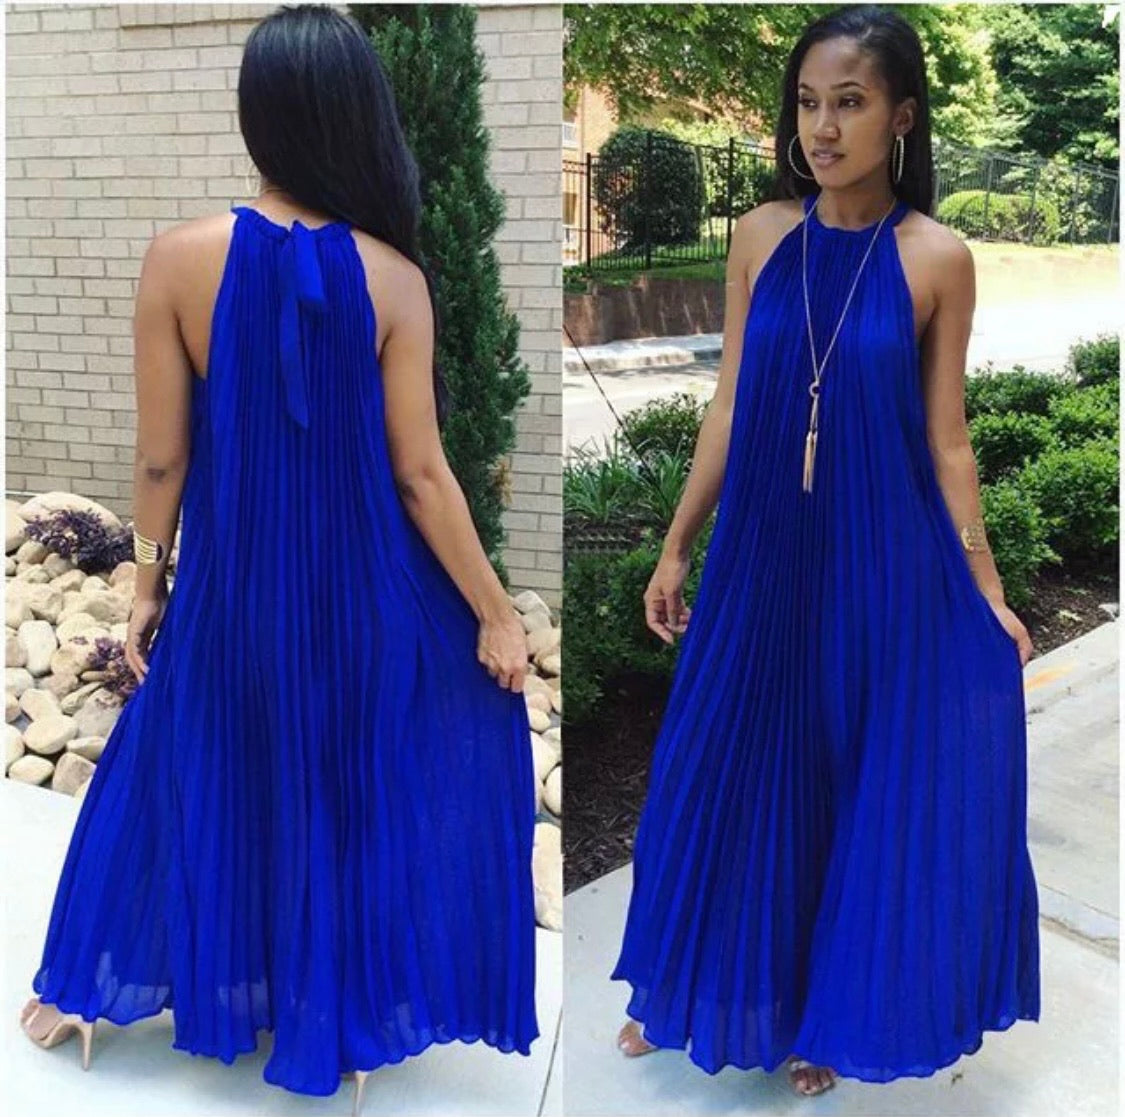 Chiffon Pleated Halter Dress